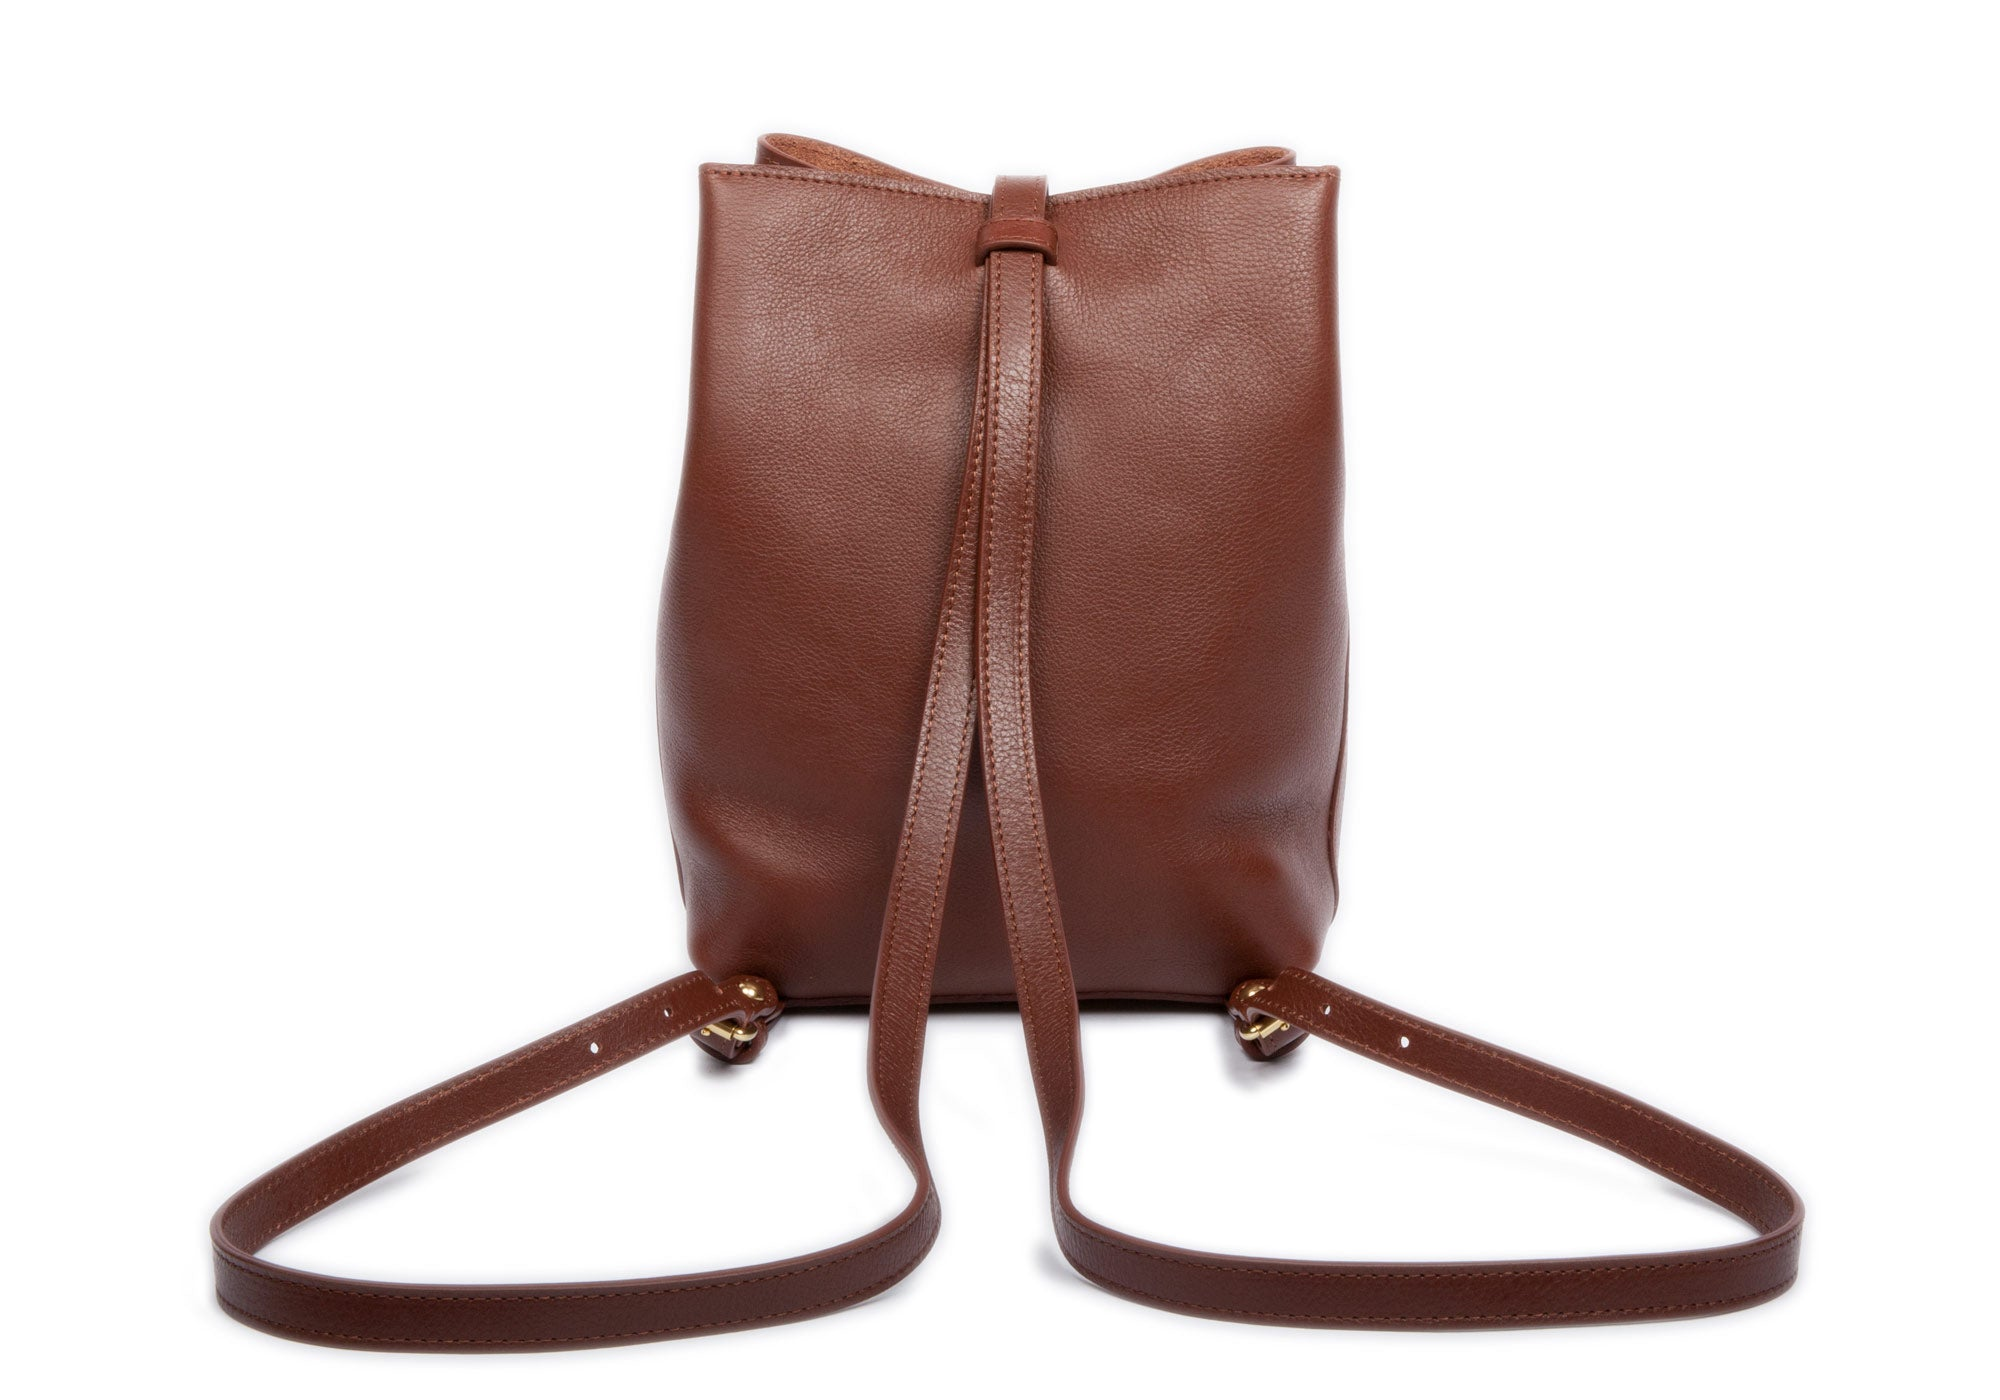 The Mini Sling Backpack Chestnut